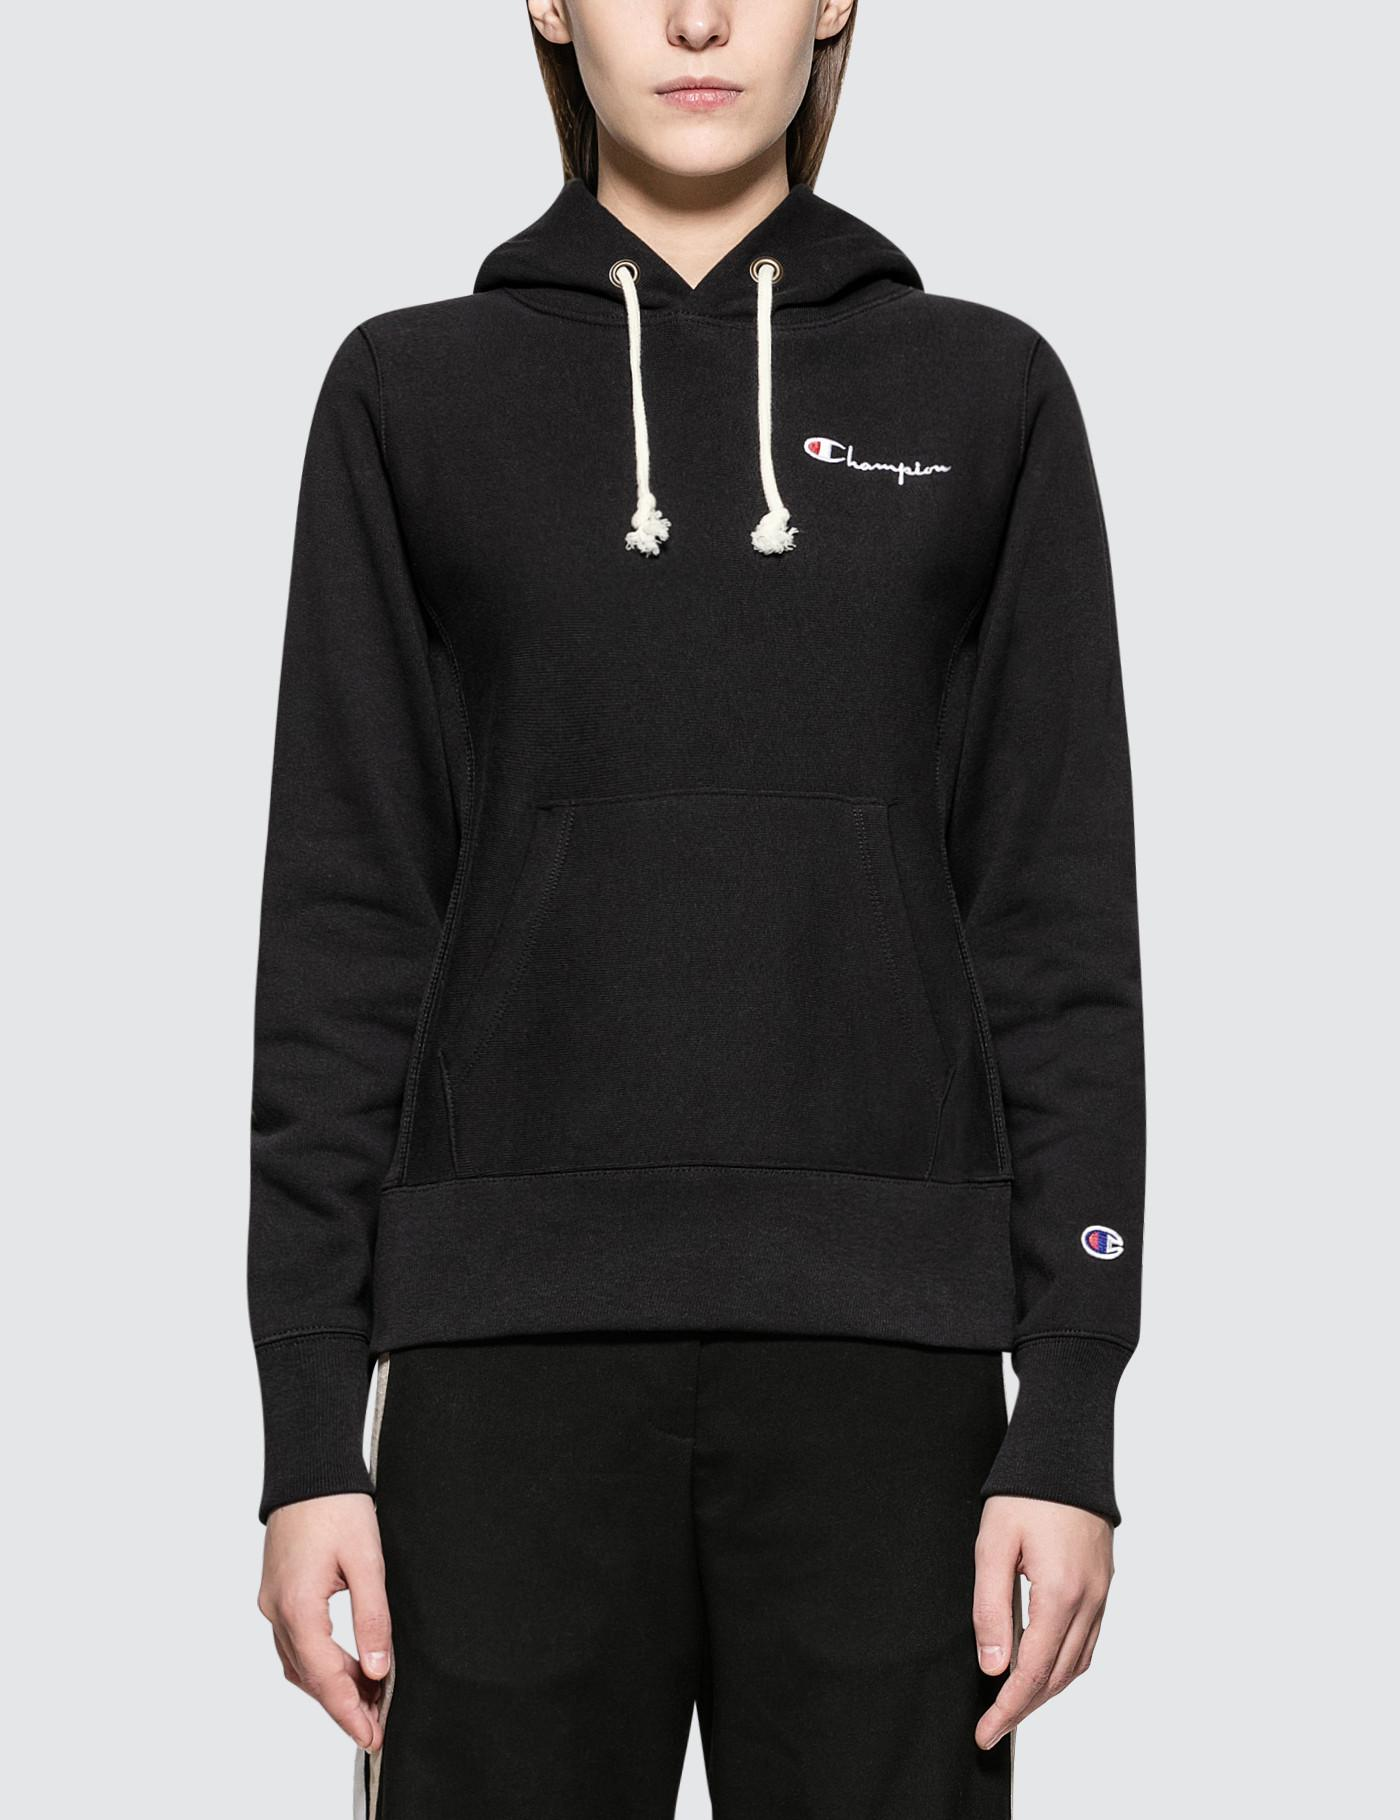 1e9f4a6a8d8 Champion Embroidered Logo Hoodie in Black - Save 13.888888888888886 ...